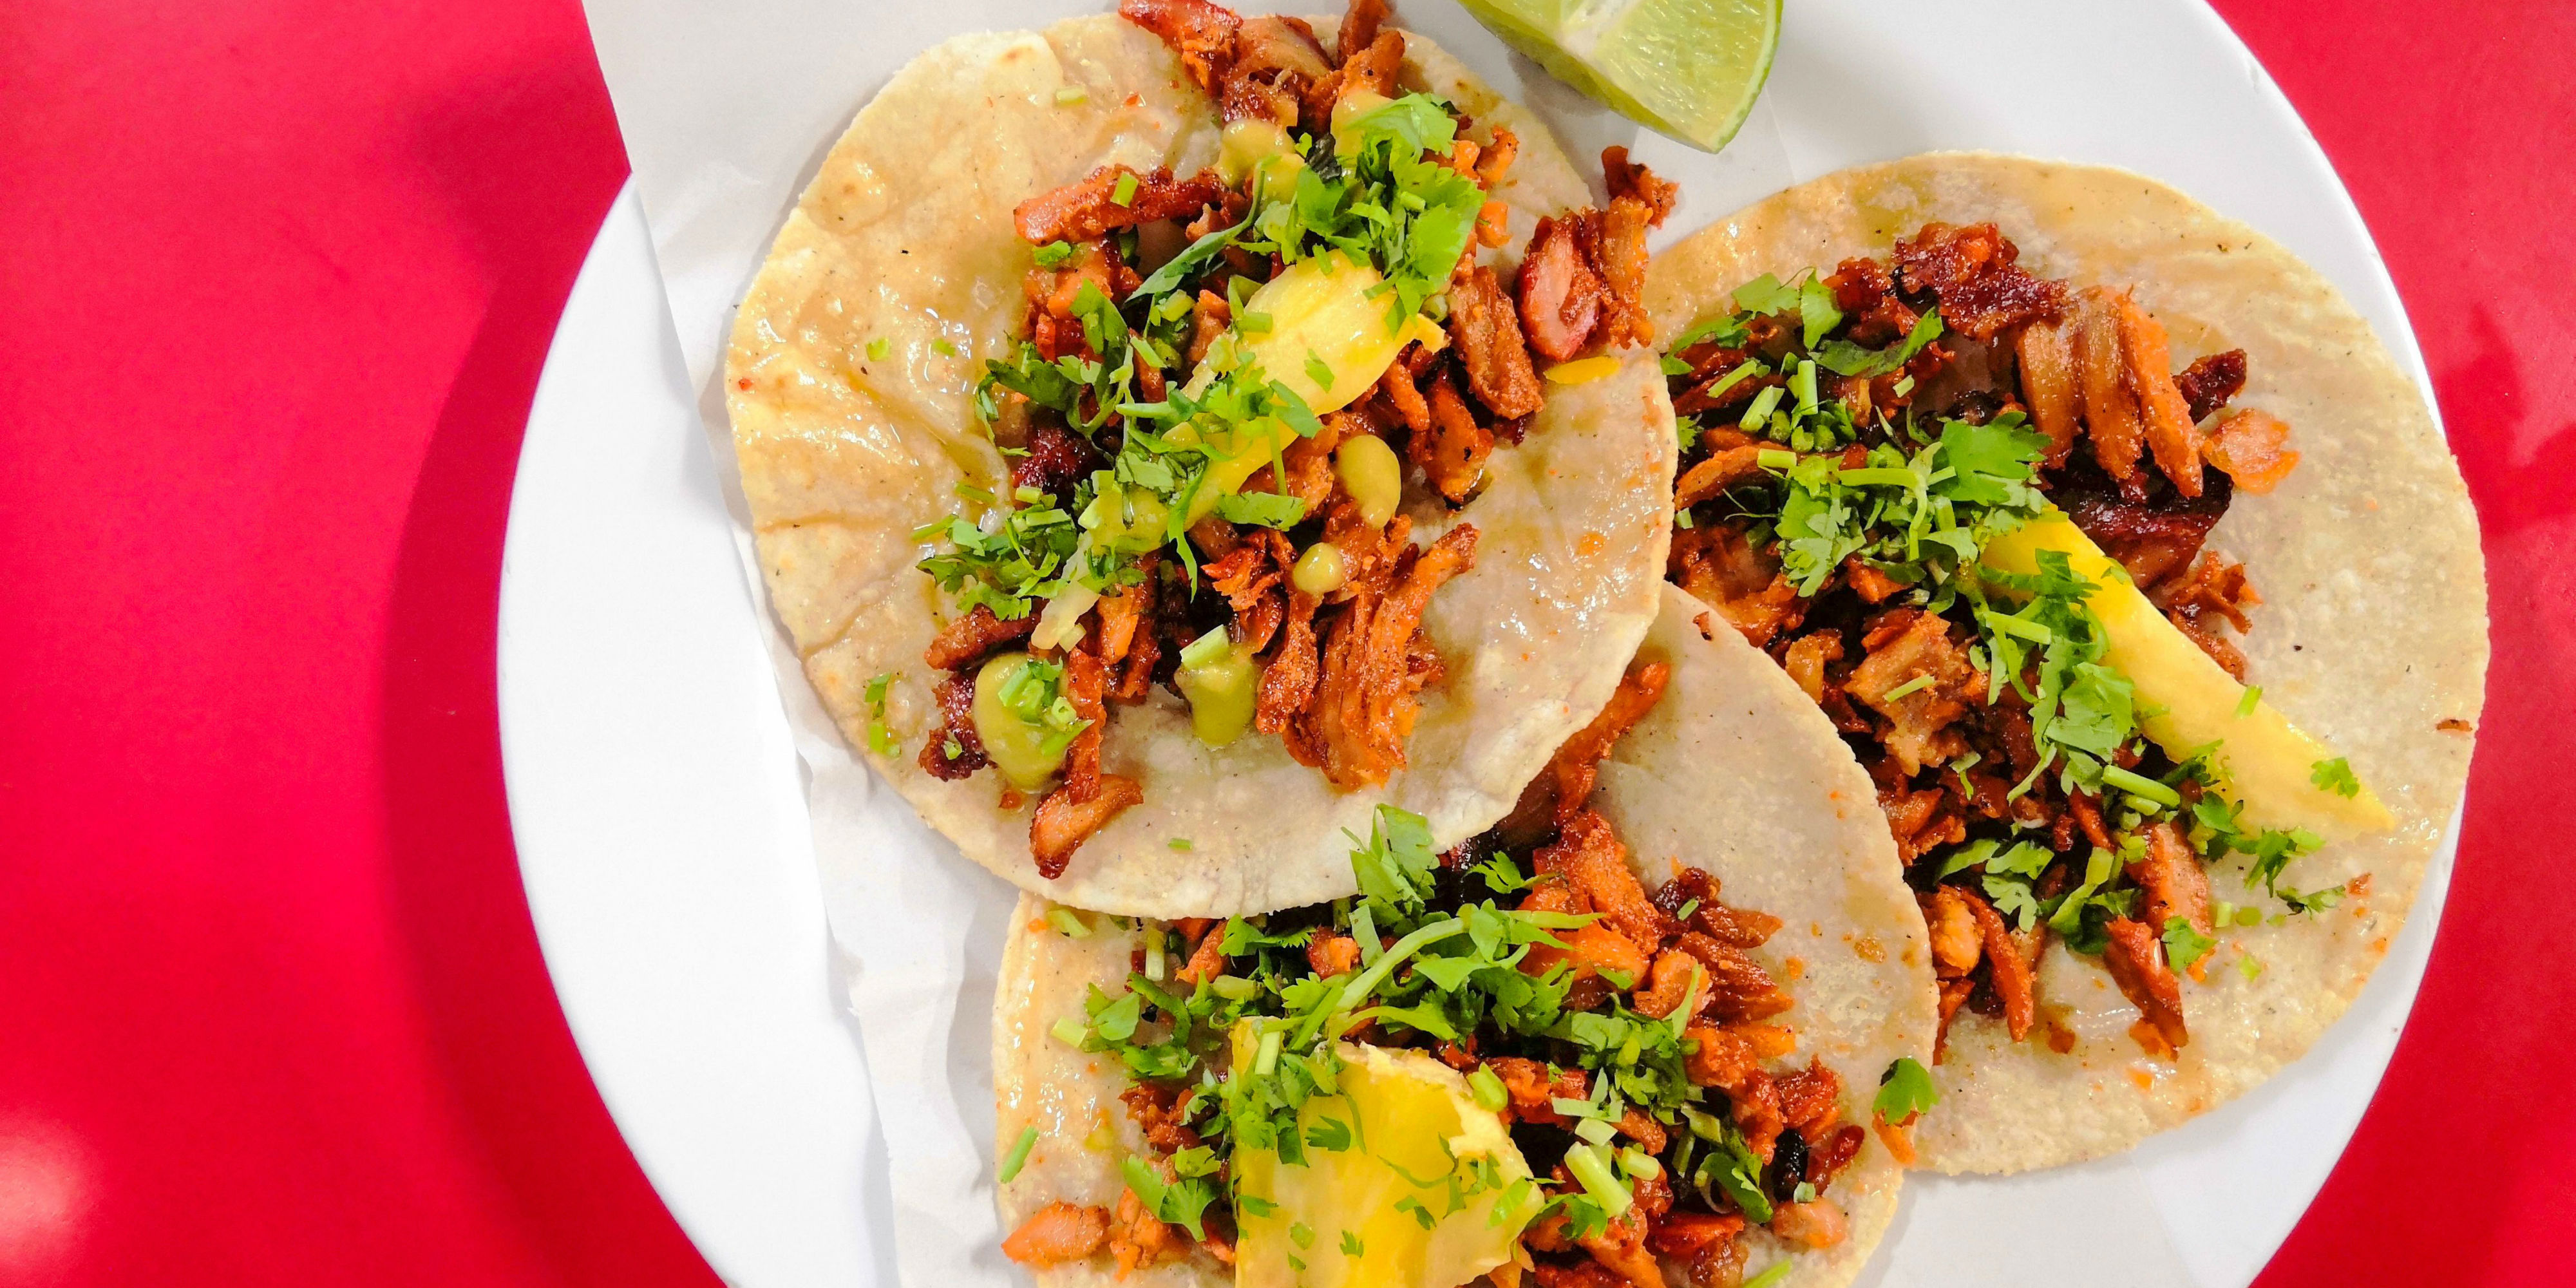 Great things to do in Puerto Morelos include taking cooking classes